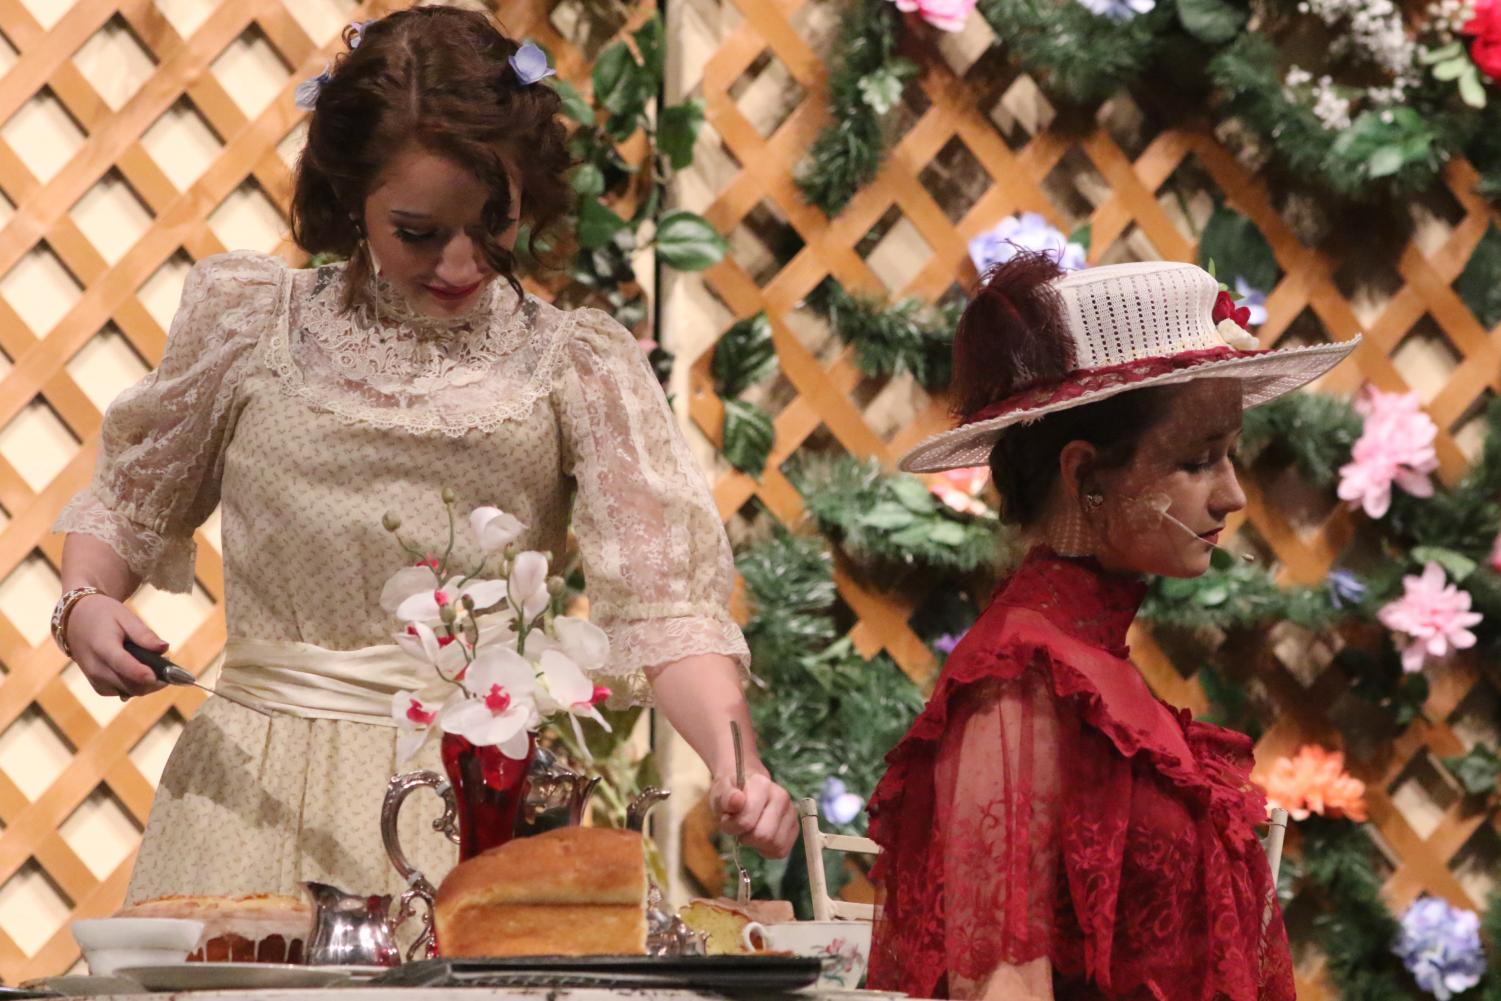 %27The+Importance+of+Being+Earnest%27+Drama+Performance+%28Photos+by+Mersadie+Kiewel%29